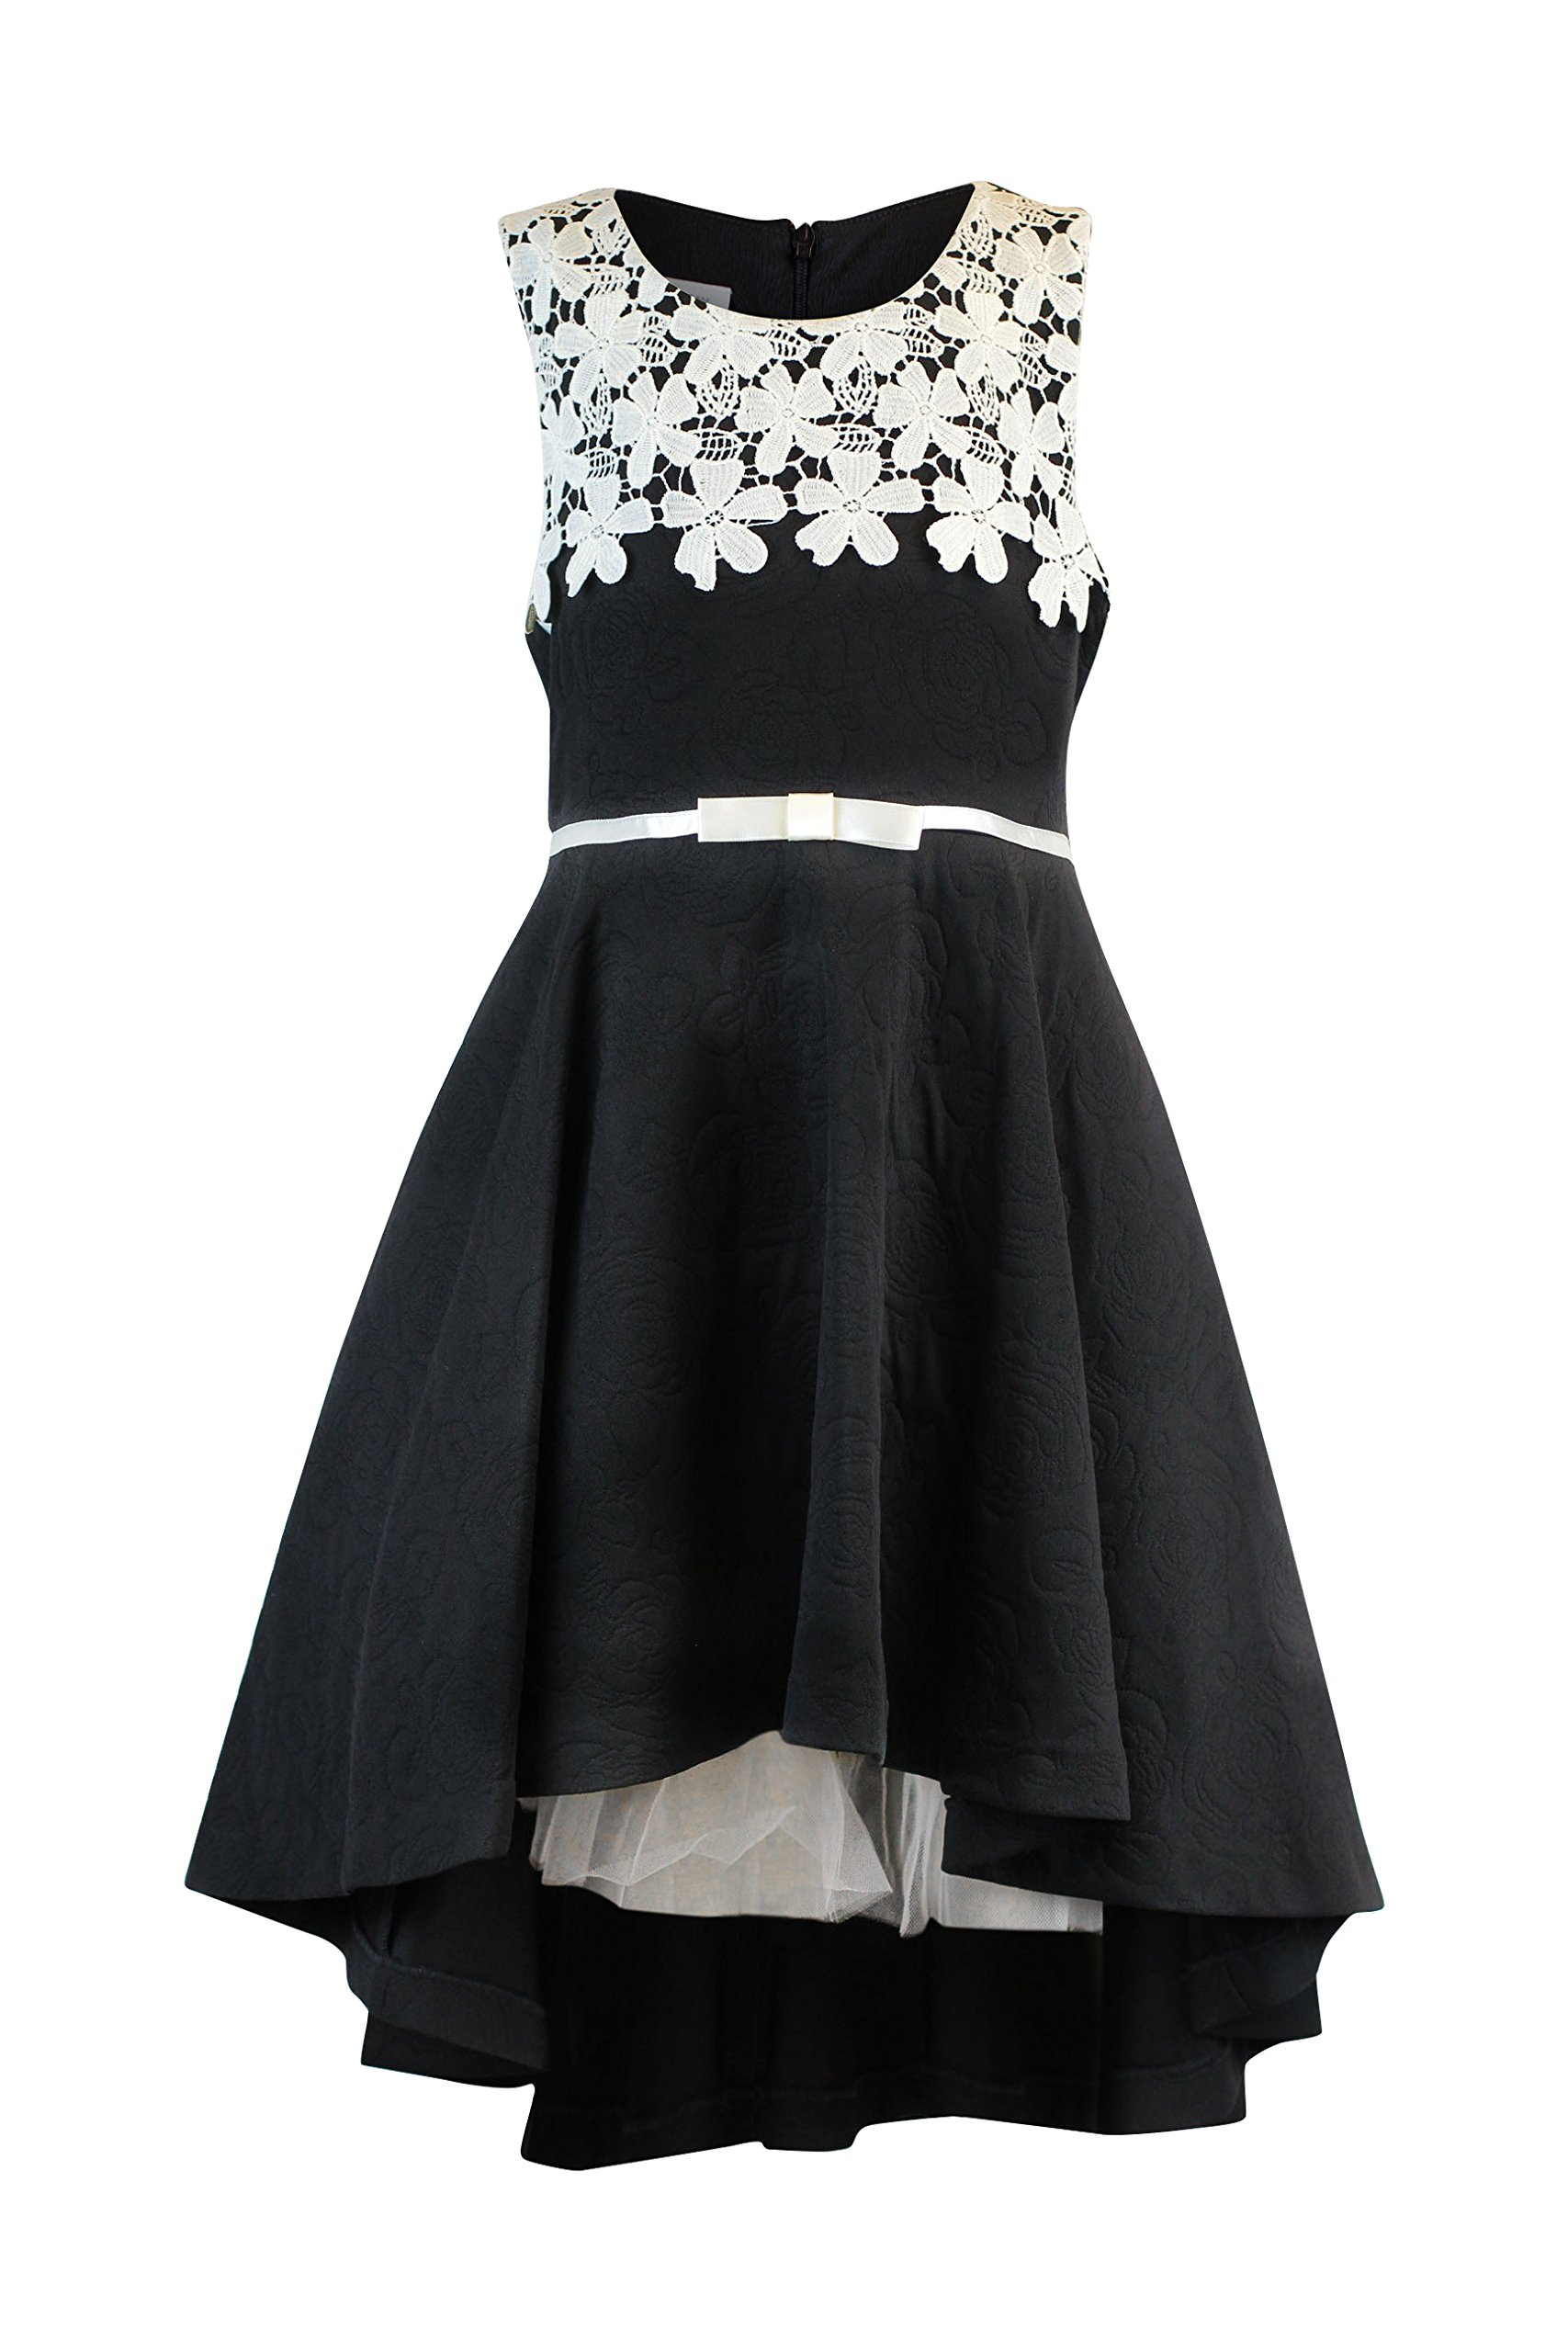 Dresses For 12 Year Olds Amazon Com